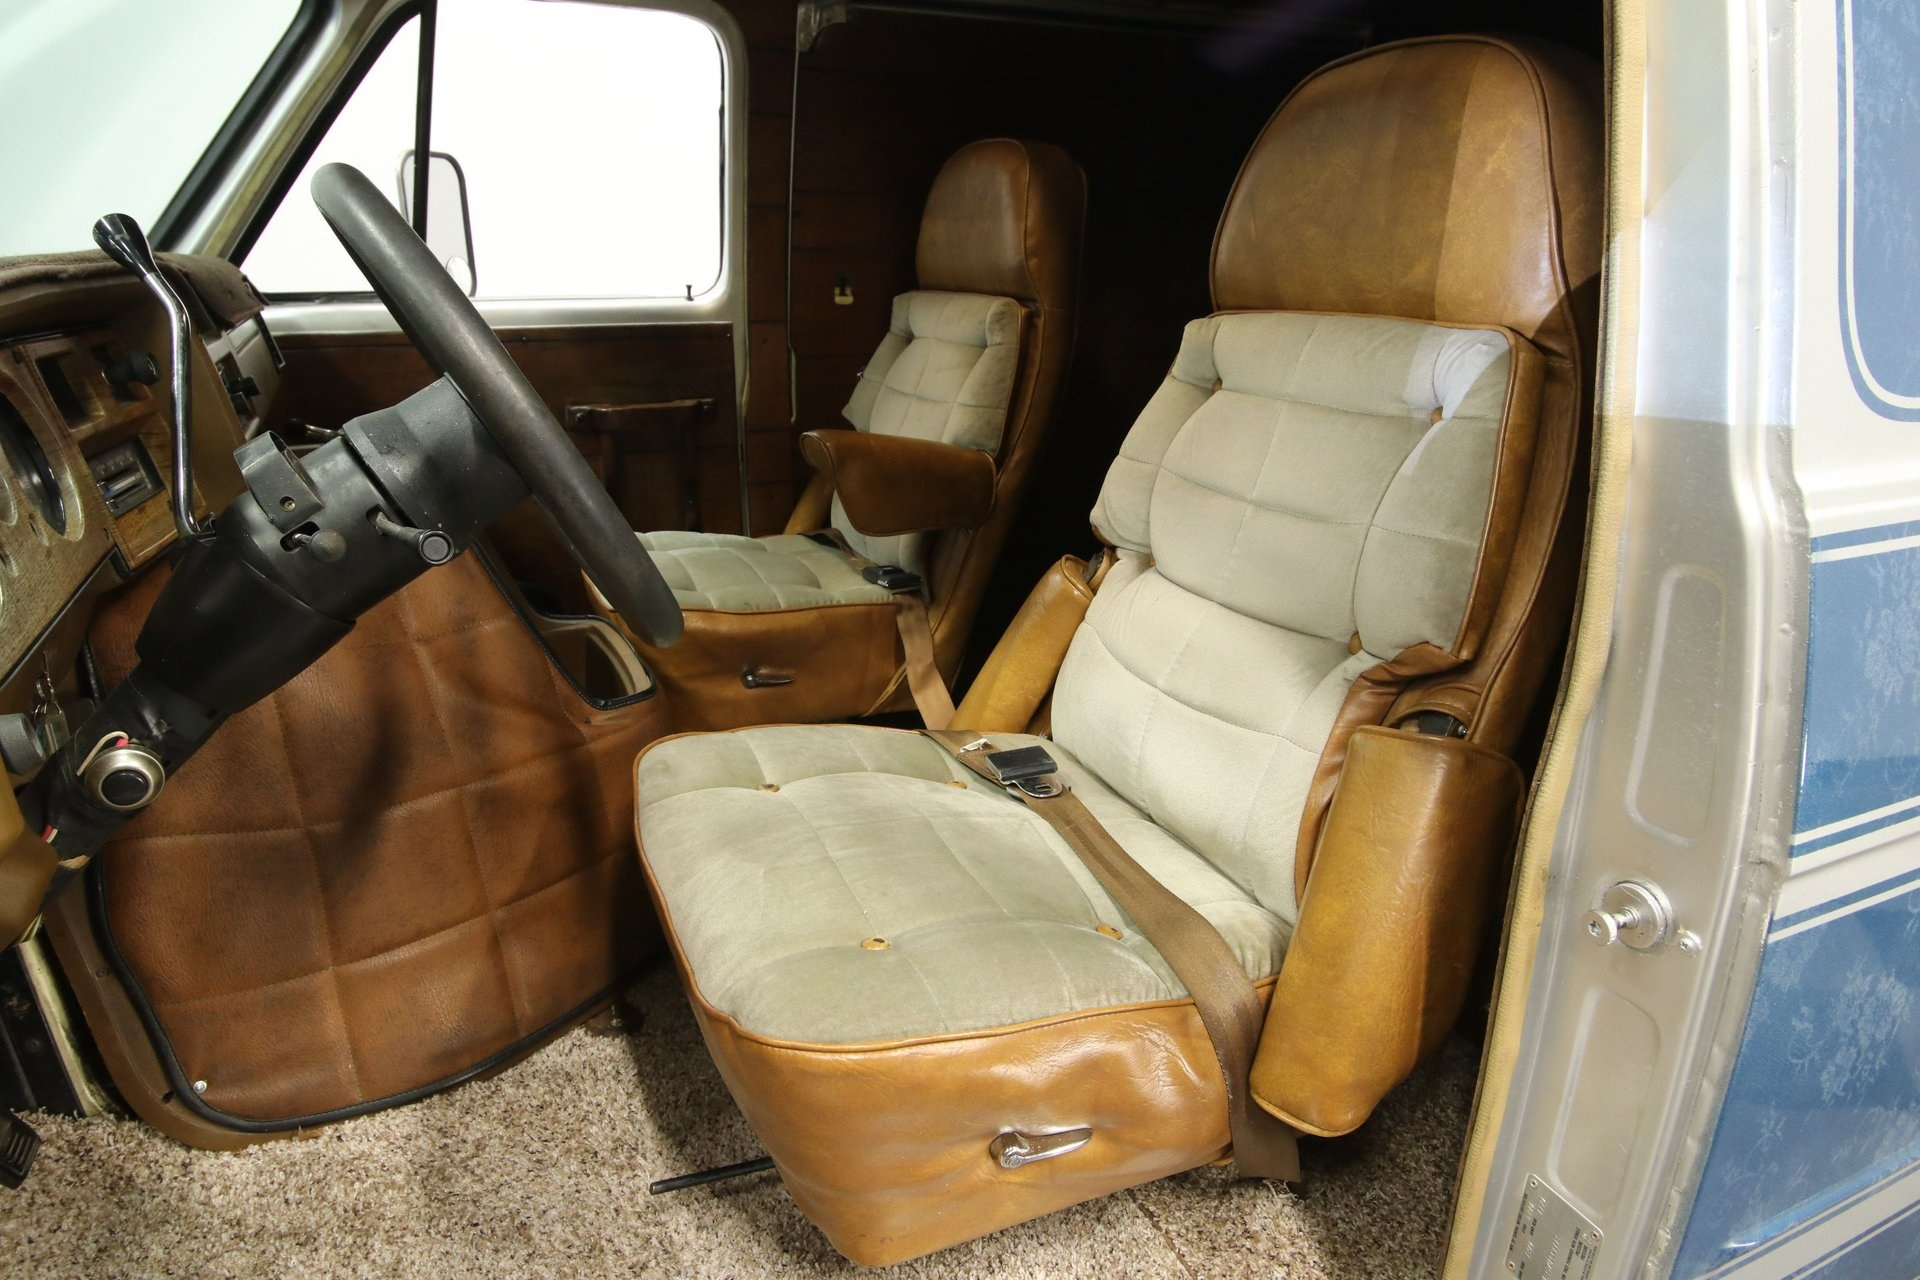 1977-chevrolet-g20-shorty-van-rddj14